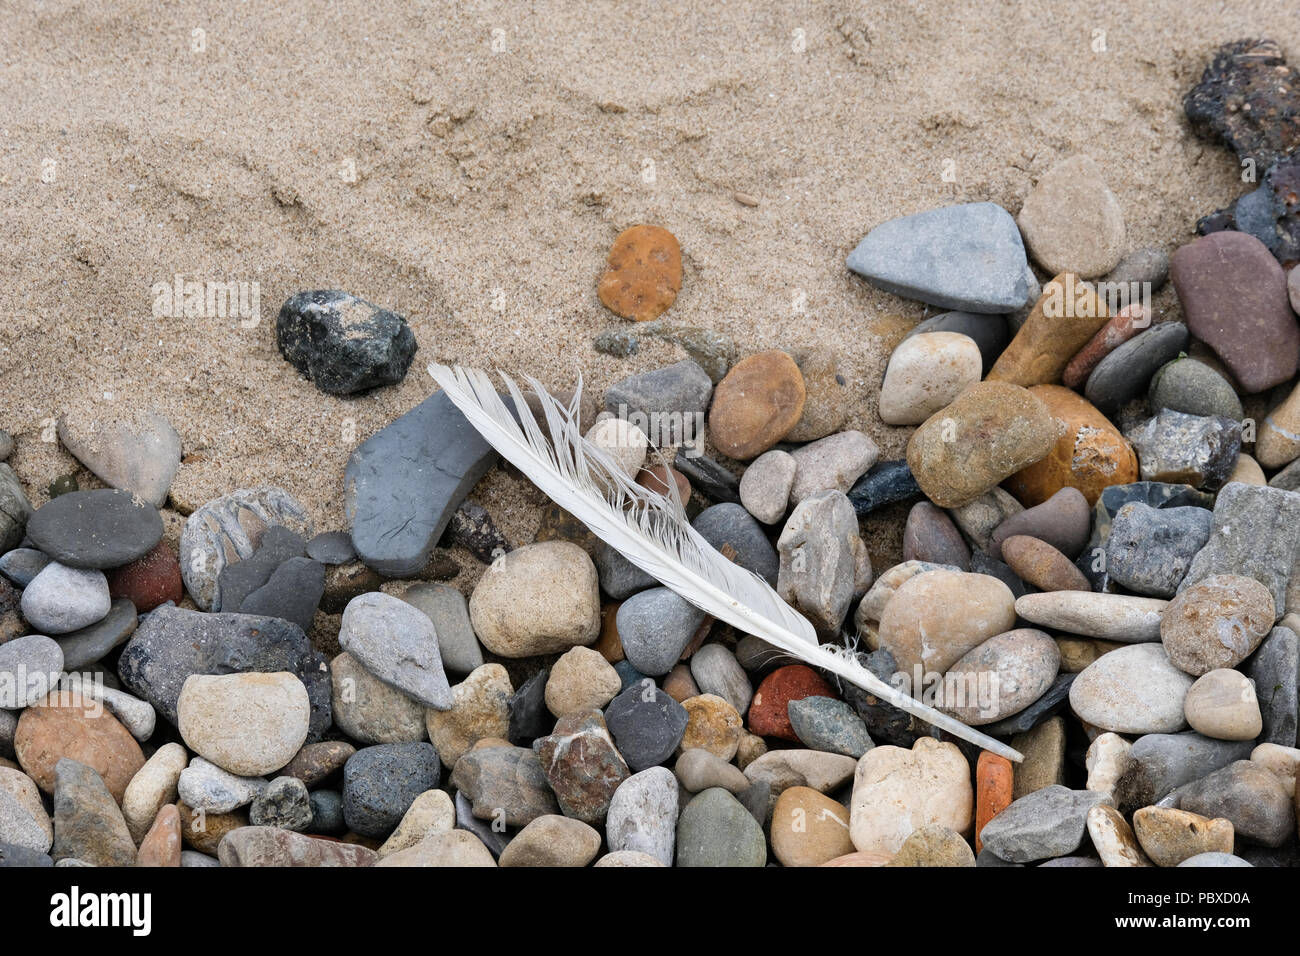 Rubbish and garbage washed up on the beaches of Yorkshire by the tides - Stock Image